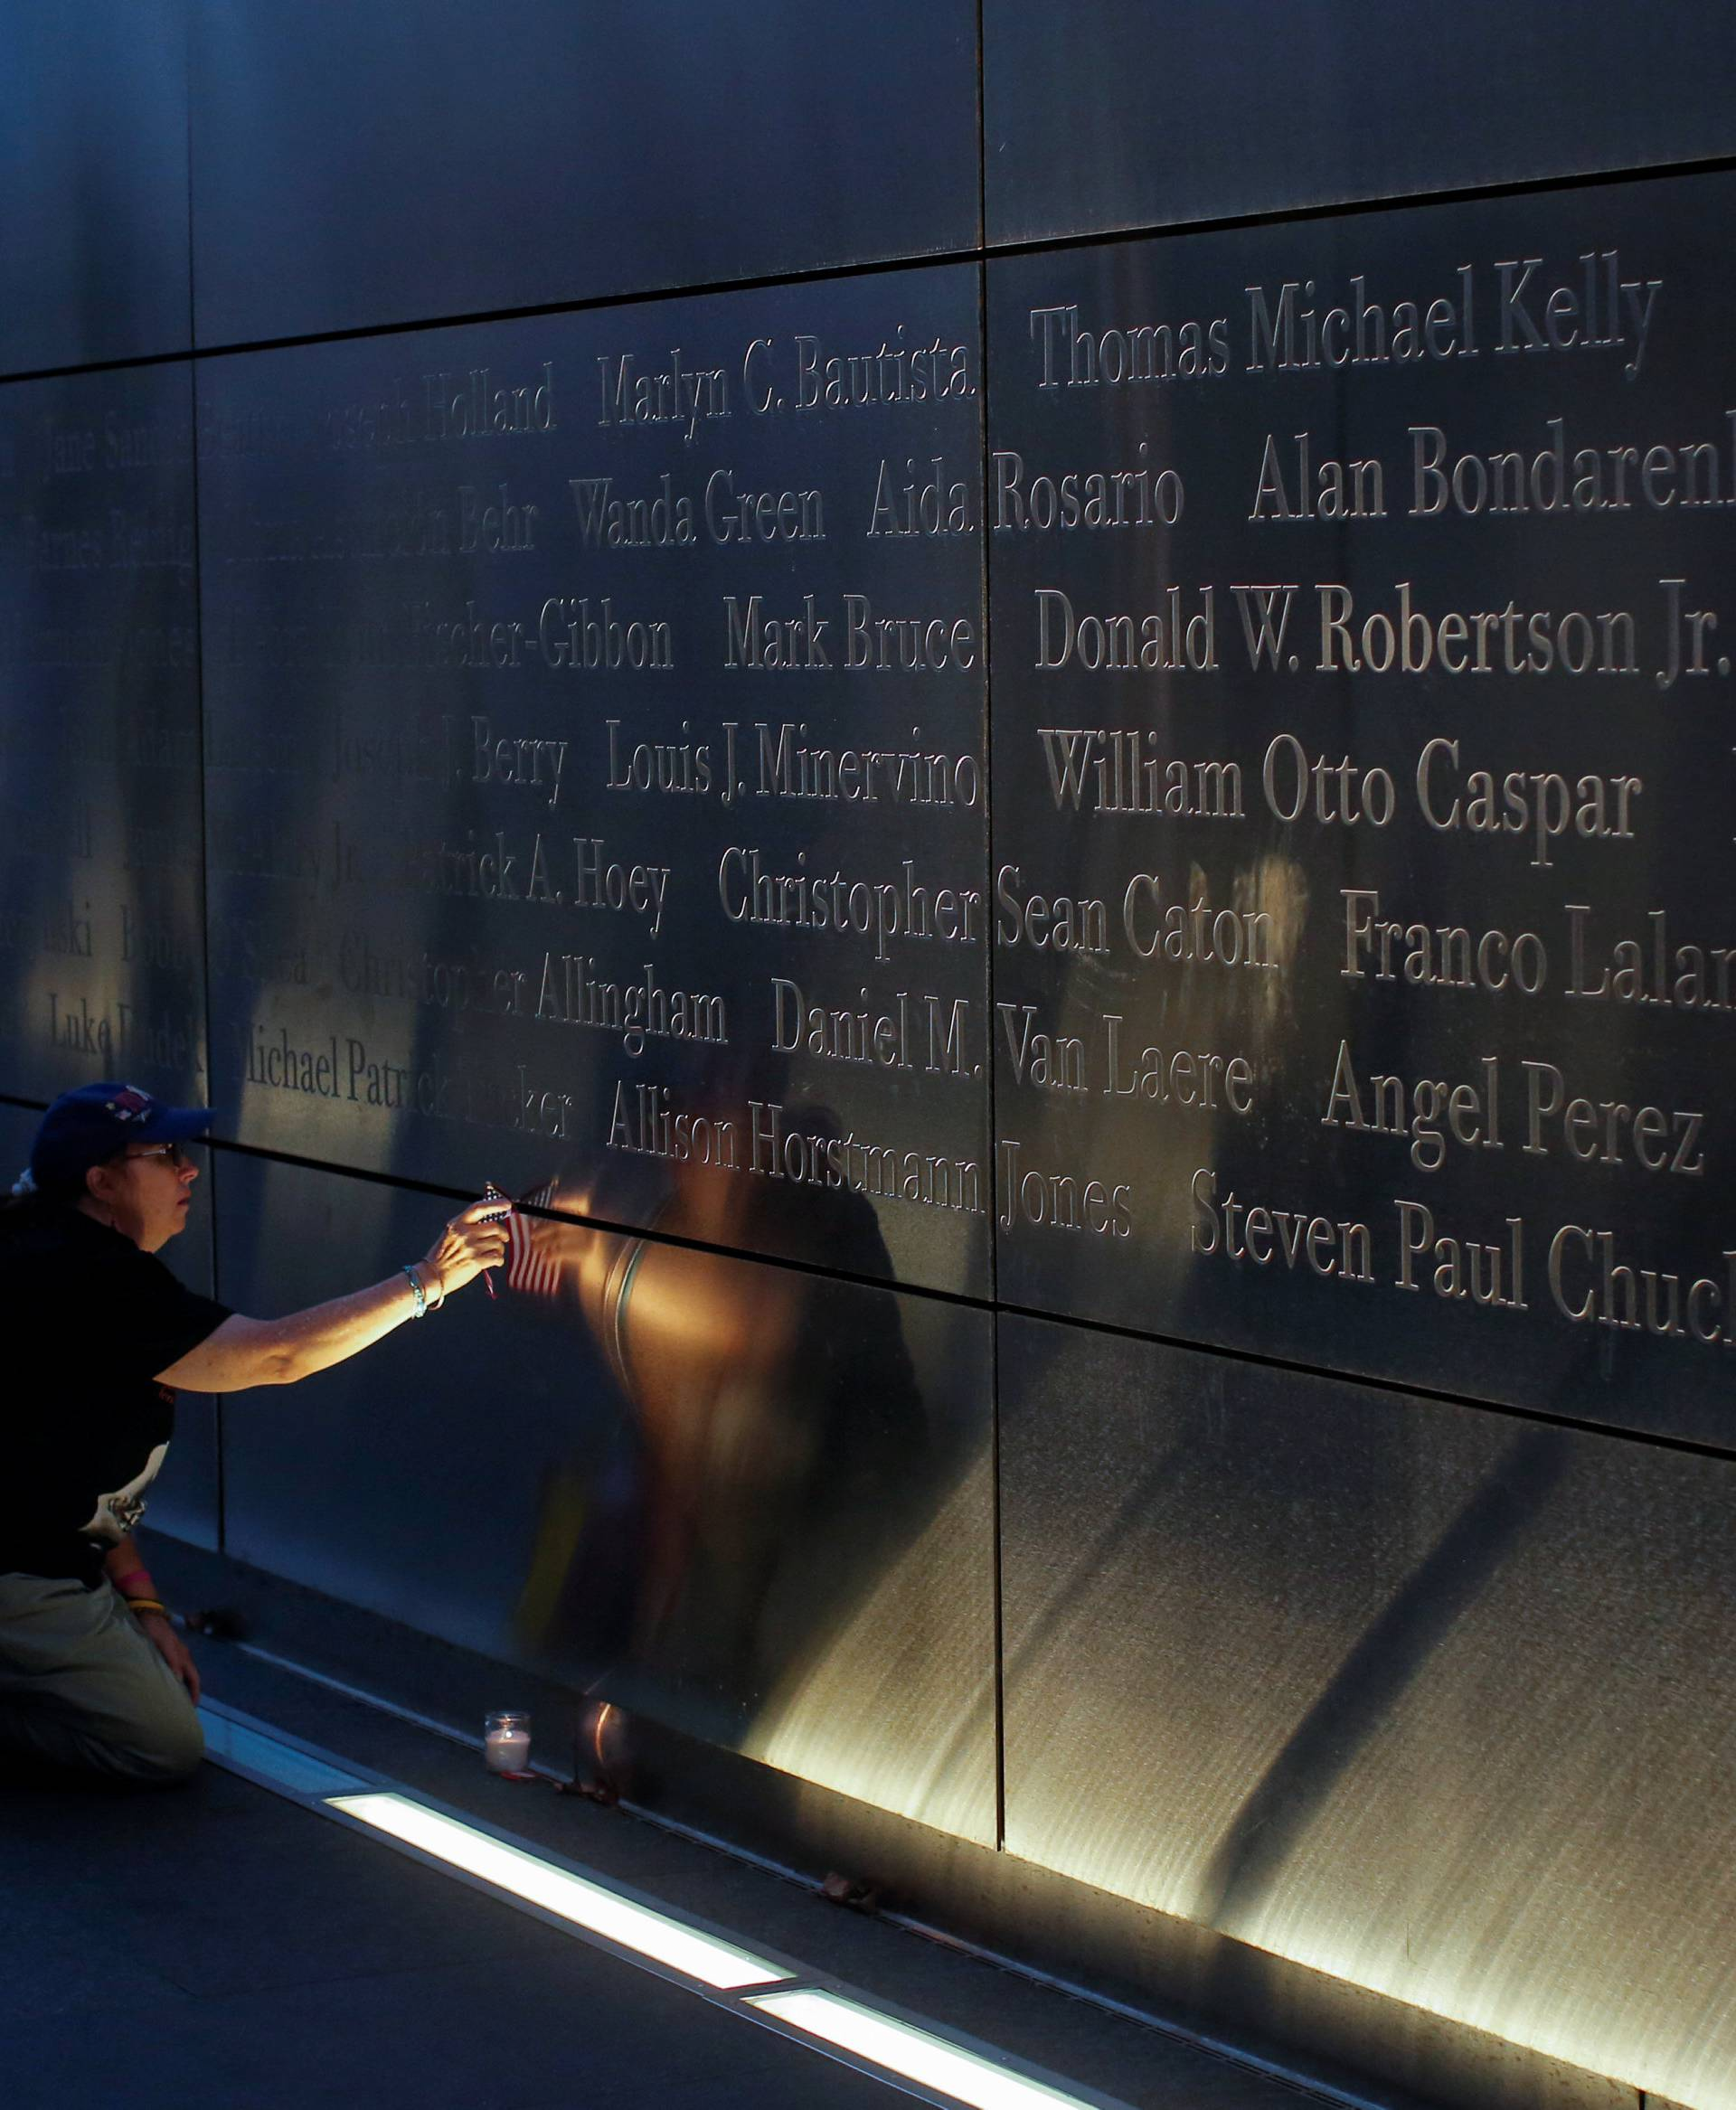 A mourner places a flag in the Empty Sky memorial on the morning of the 15th anniversary of the 9/11 attacks in New Jersey